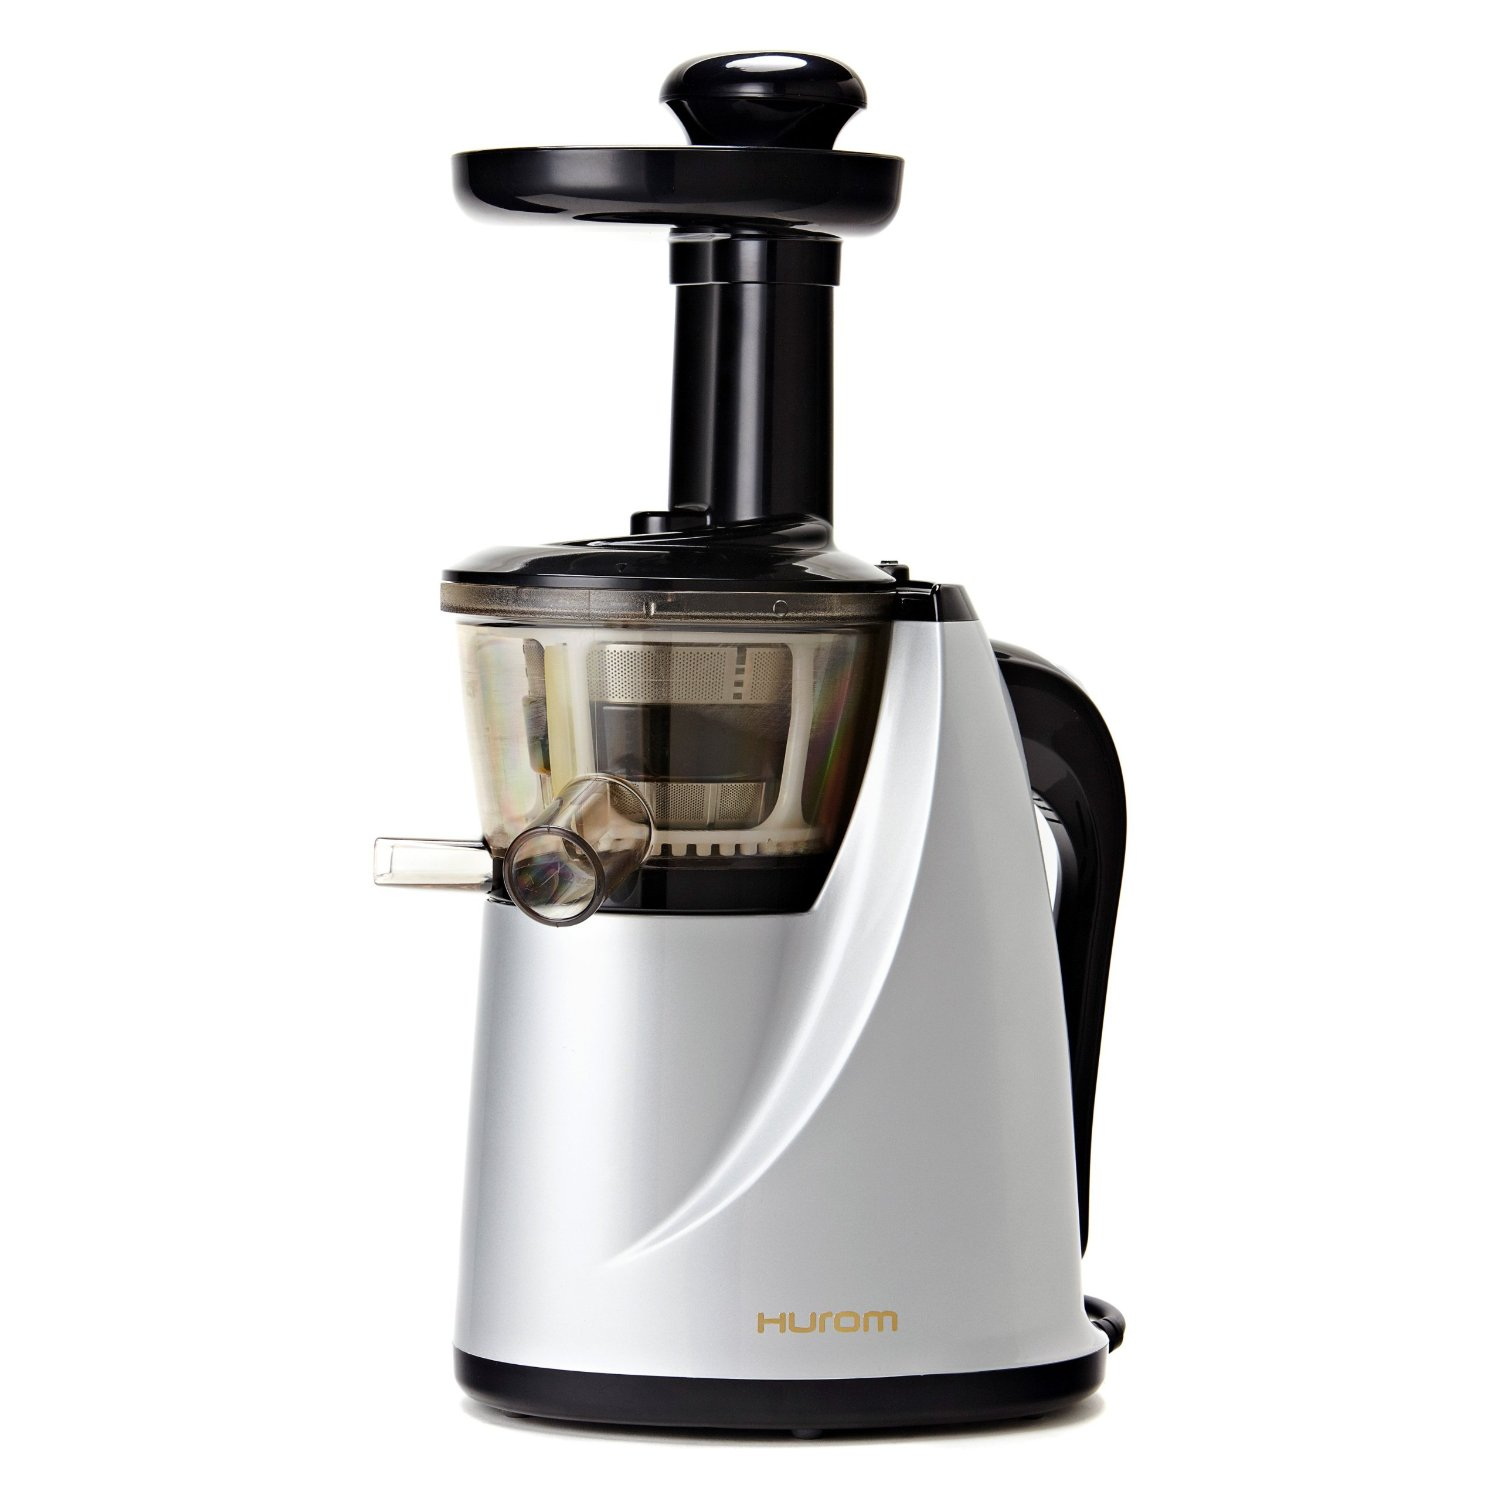 Thomson Slow Juicer Review : Hurom HU-100 Masticating Slow Juicer Review - Best Cold Press Juicers